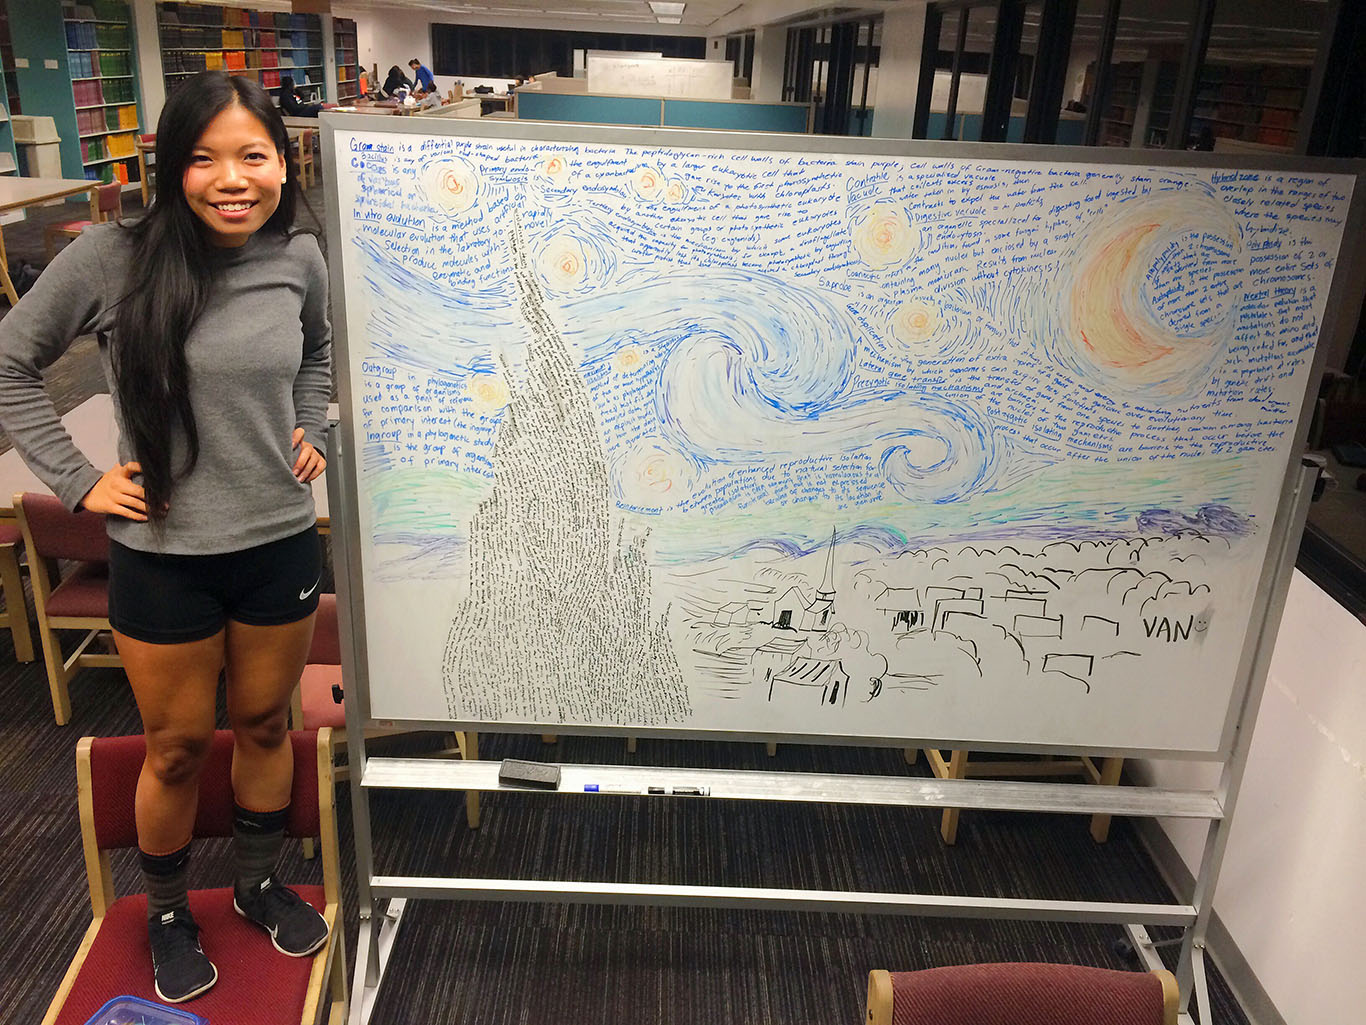 Van Truong standing next to her starry night artwork on a library whiteboard